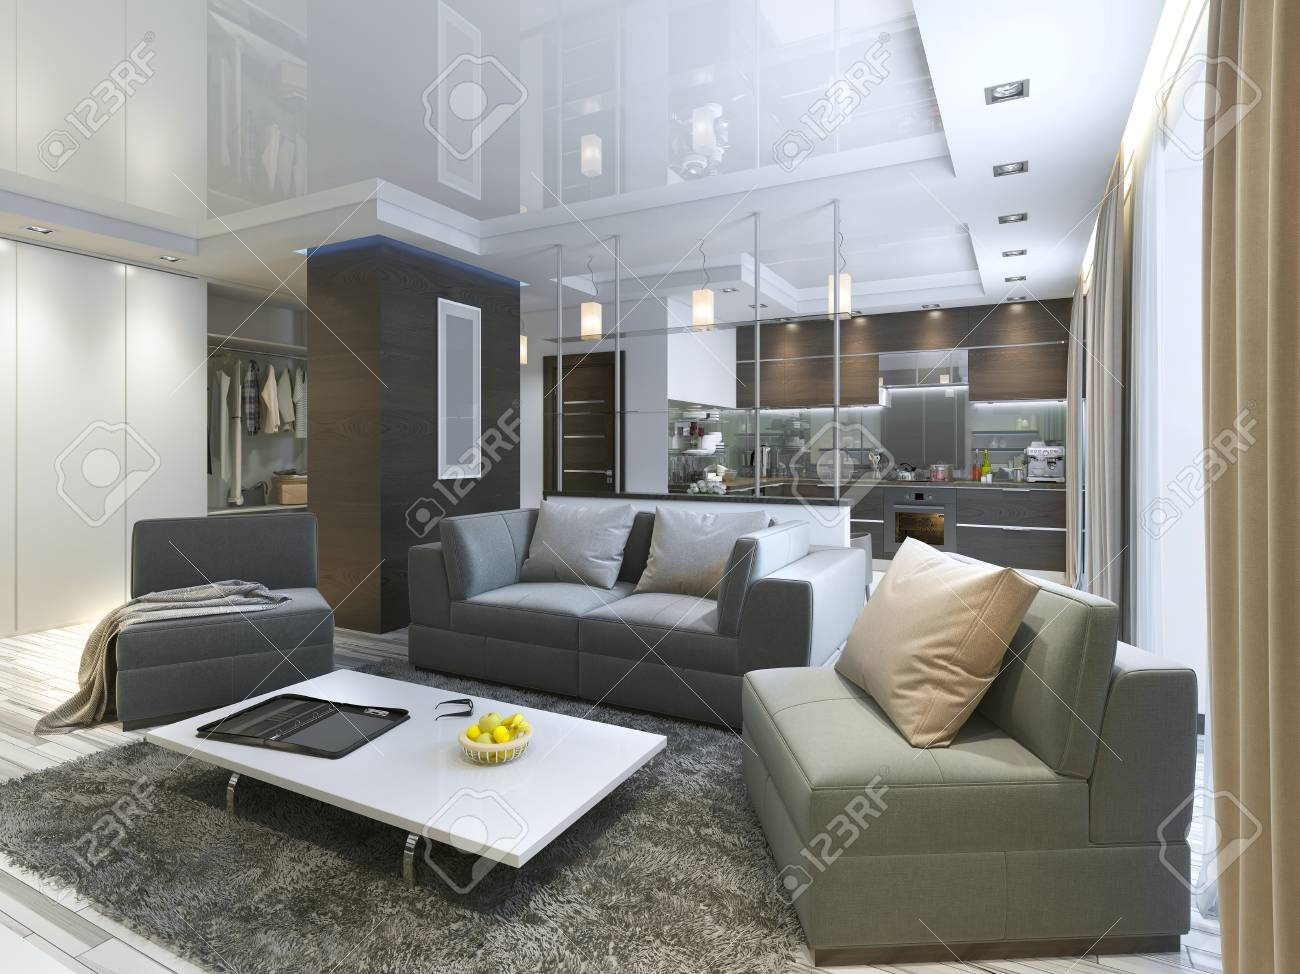 Luxury Living Room Studio In A Modern Style With Comfortable ...